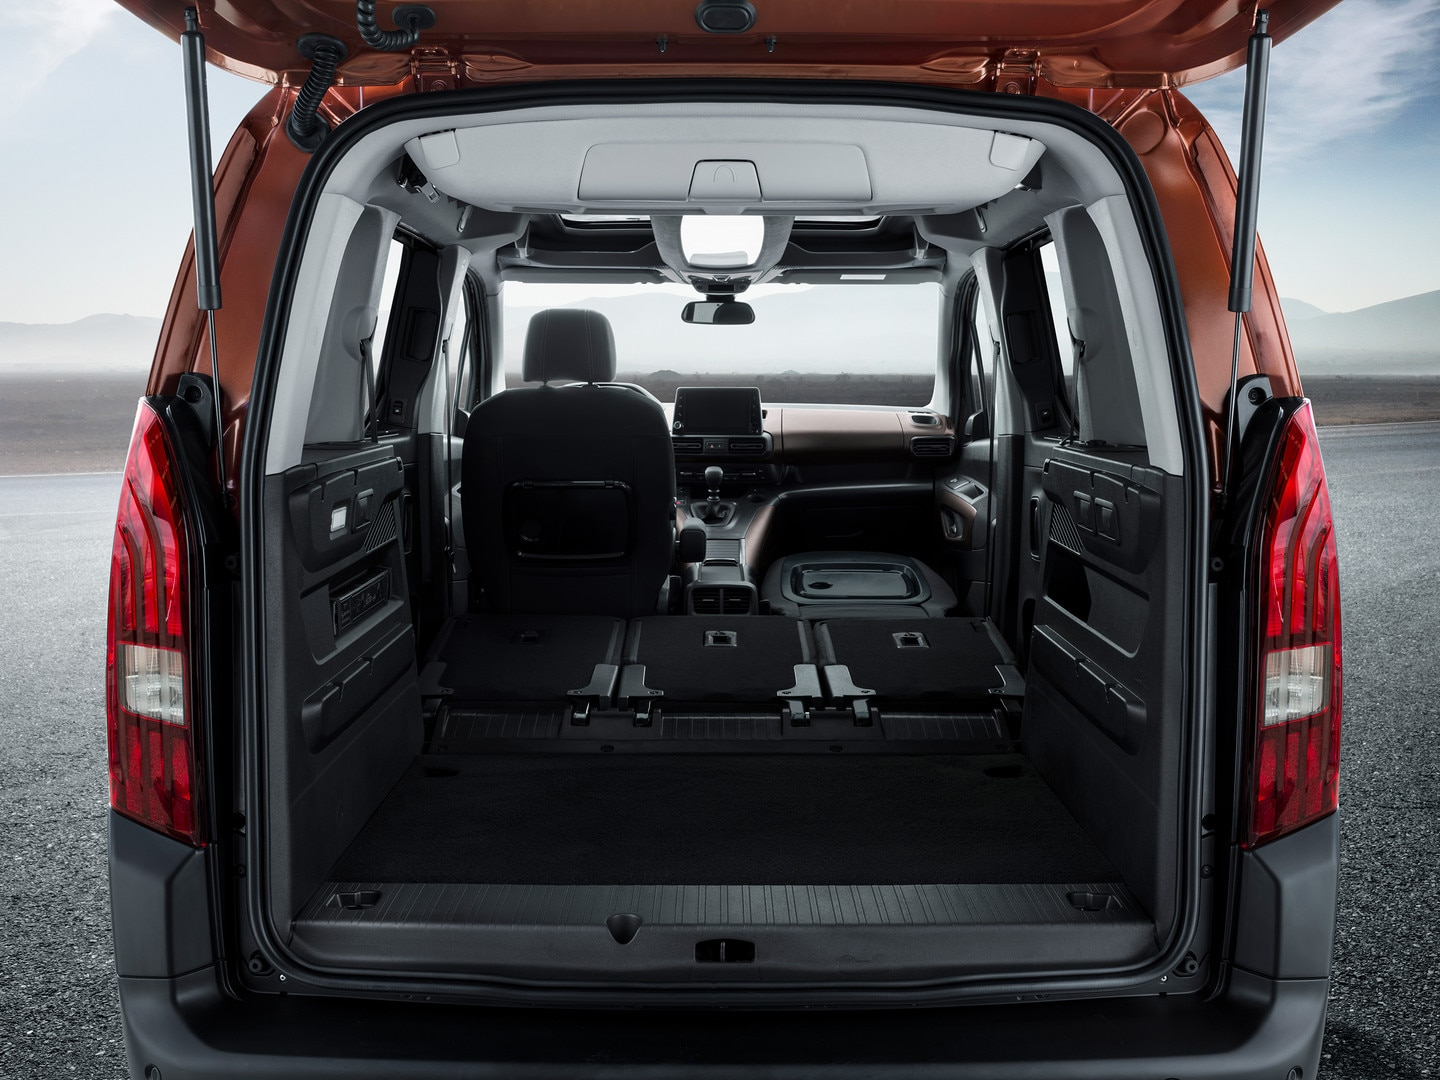 NEW PEUGEOT RIFTER – 3 individual collapsible rear seats with Magic Flat